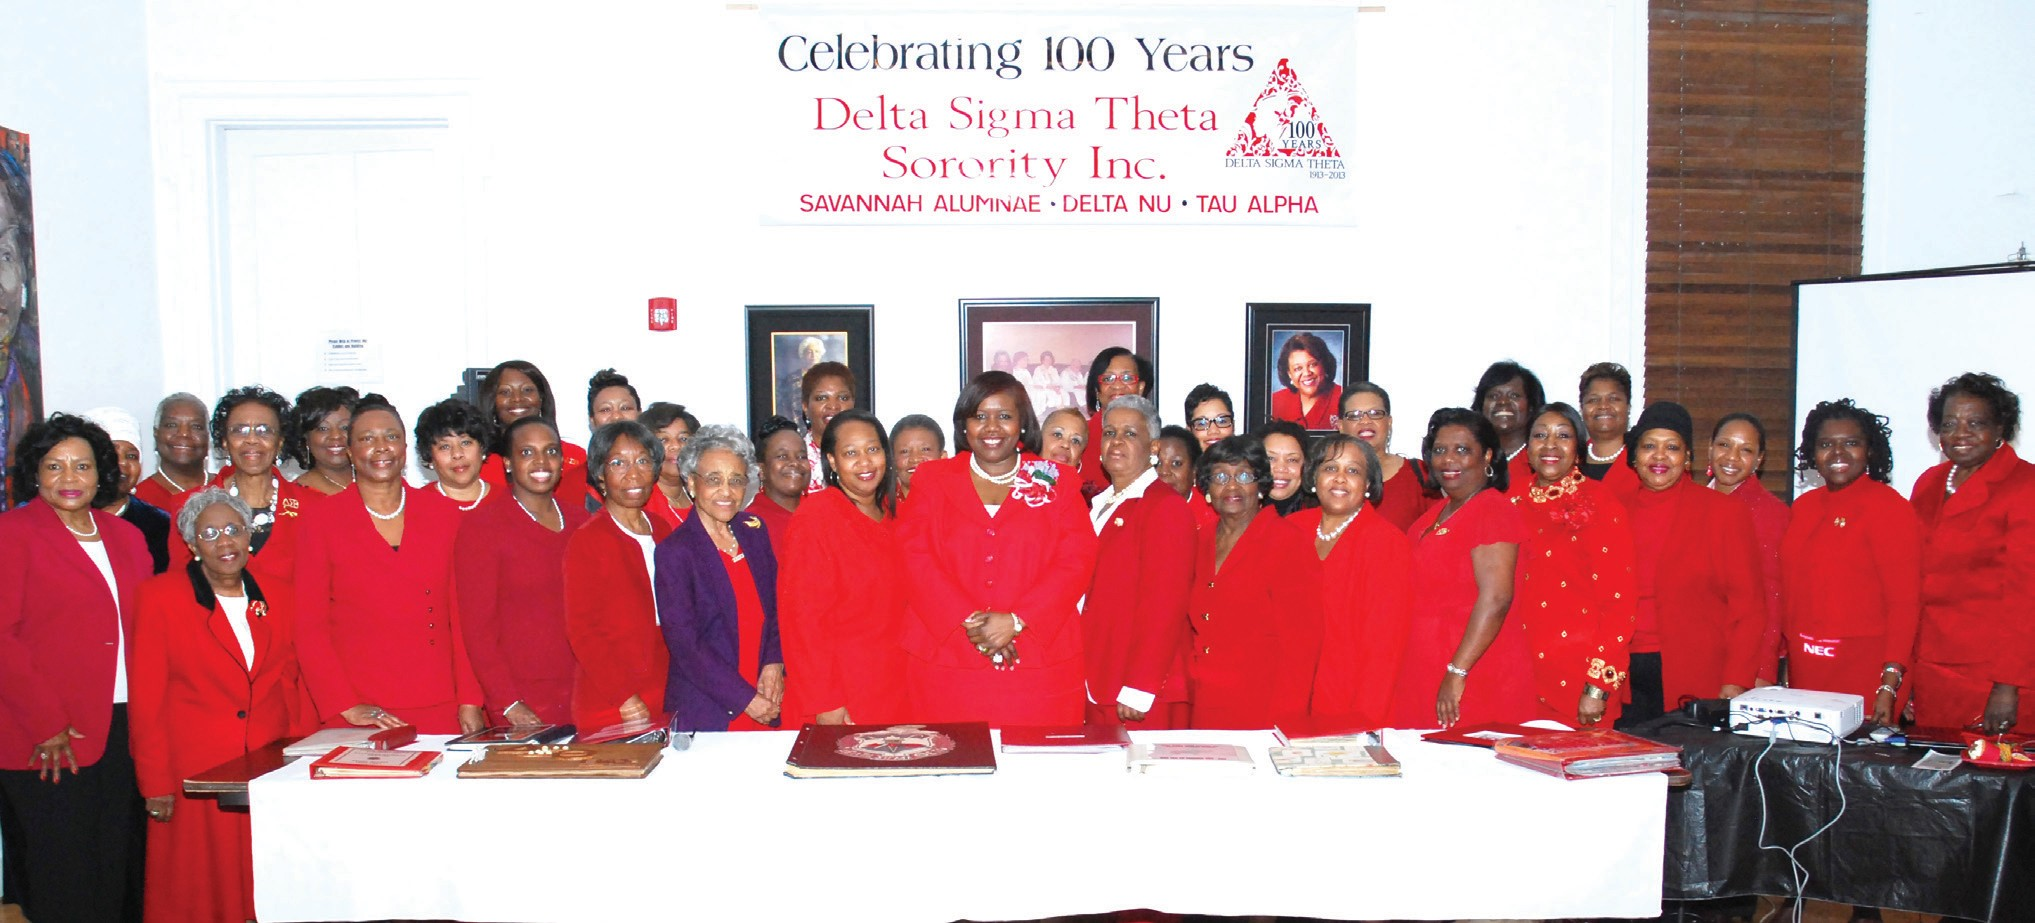 Members of the Savannah Alumnae Chapter with PResident, Grayzel Ellison